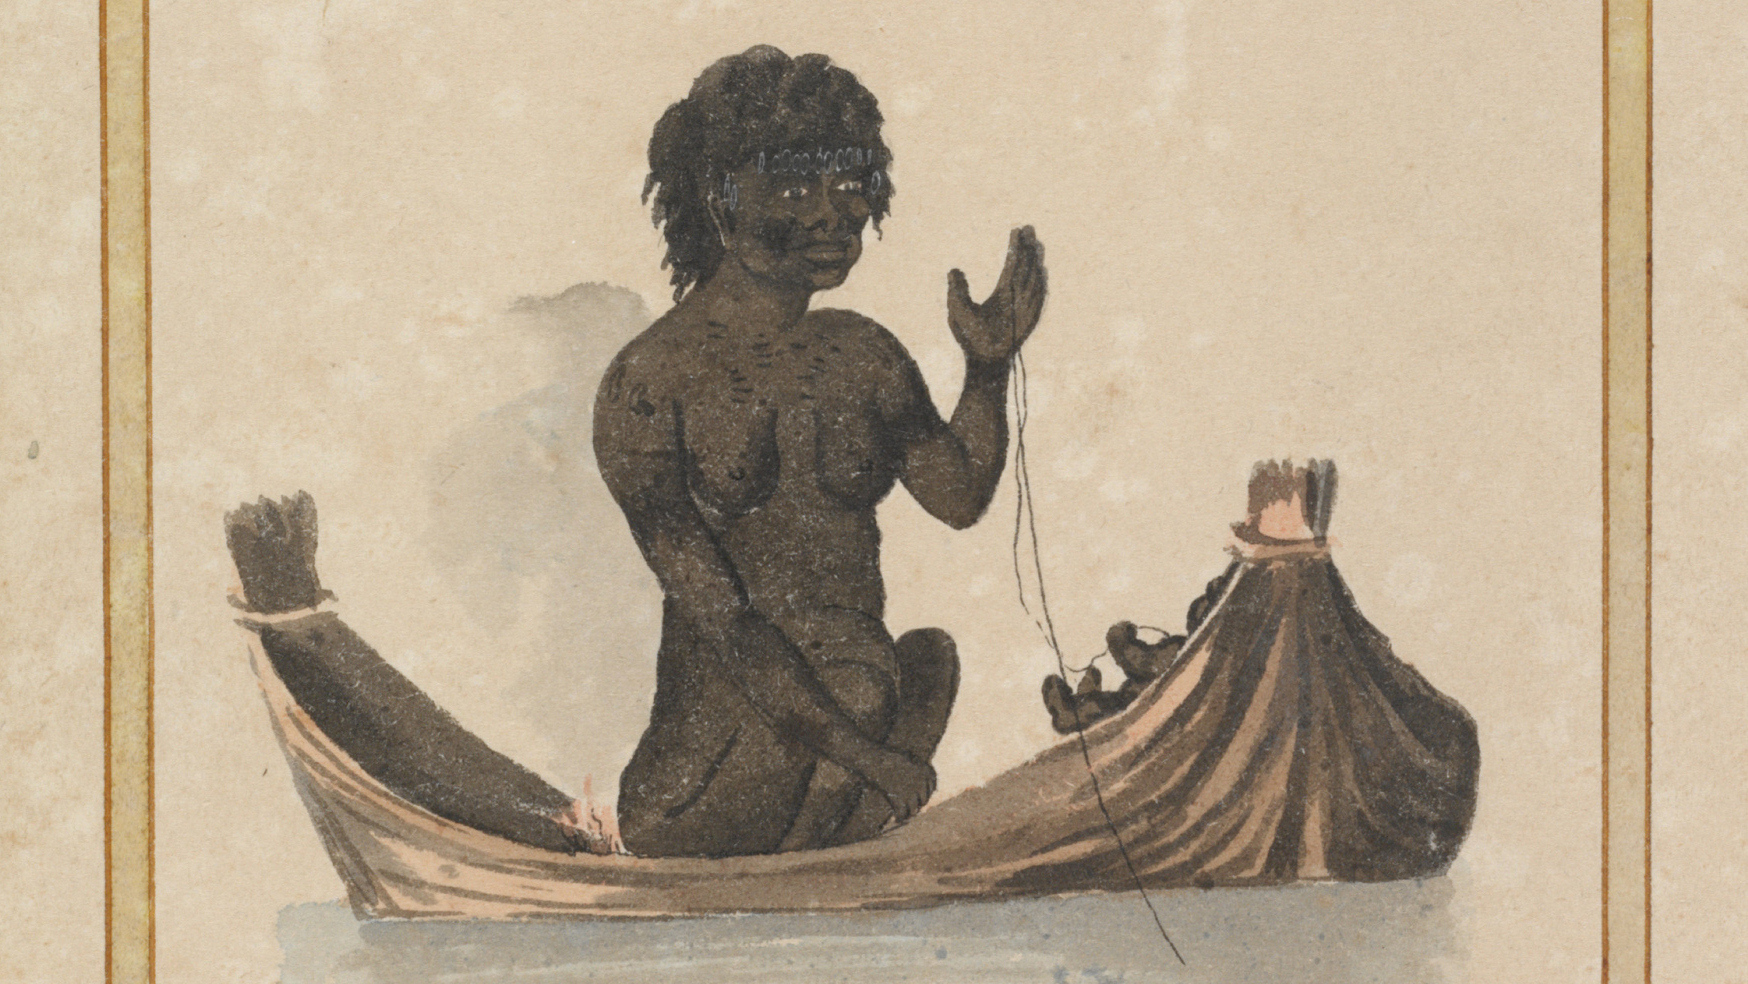 Handpainted image from book of woman in canoe. Margins of page visible on left and right.